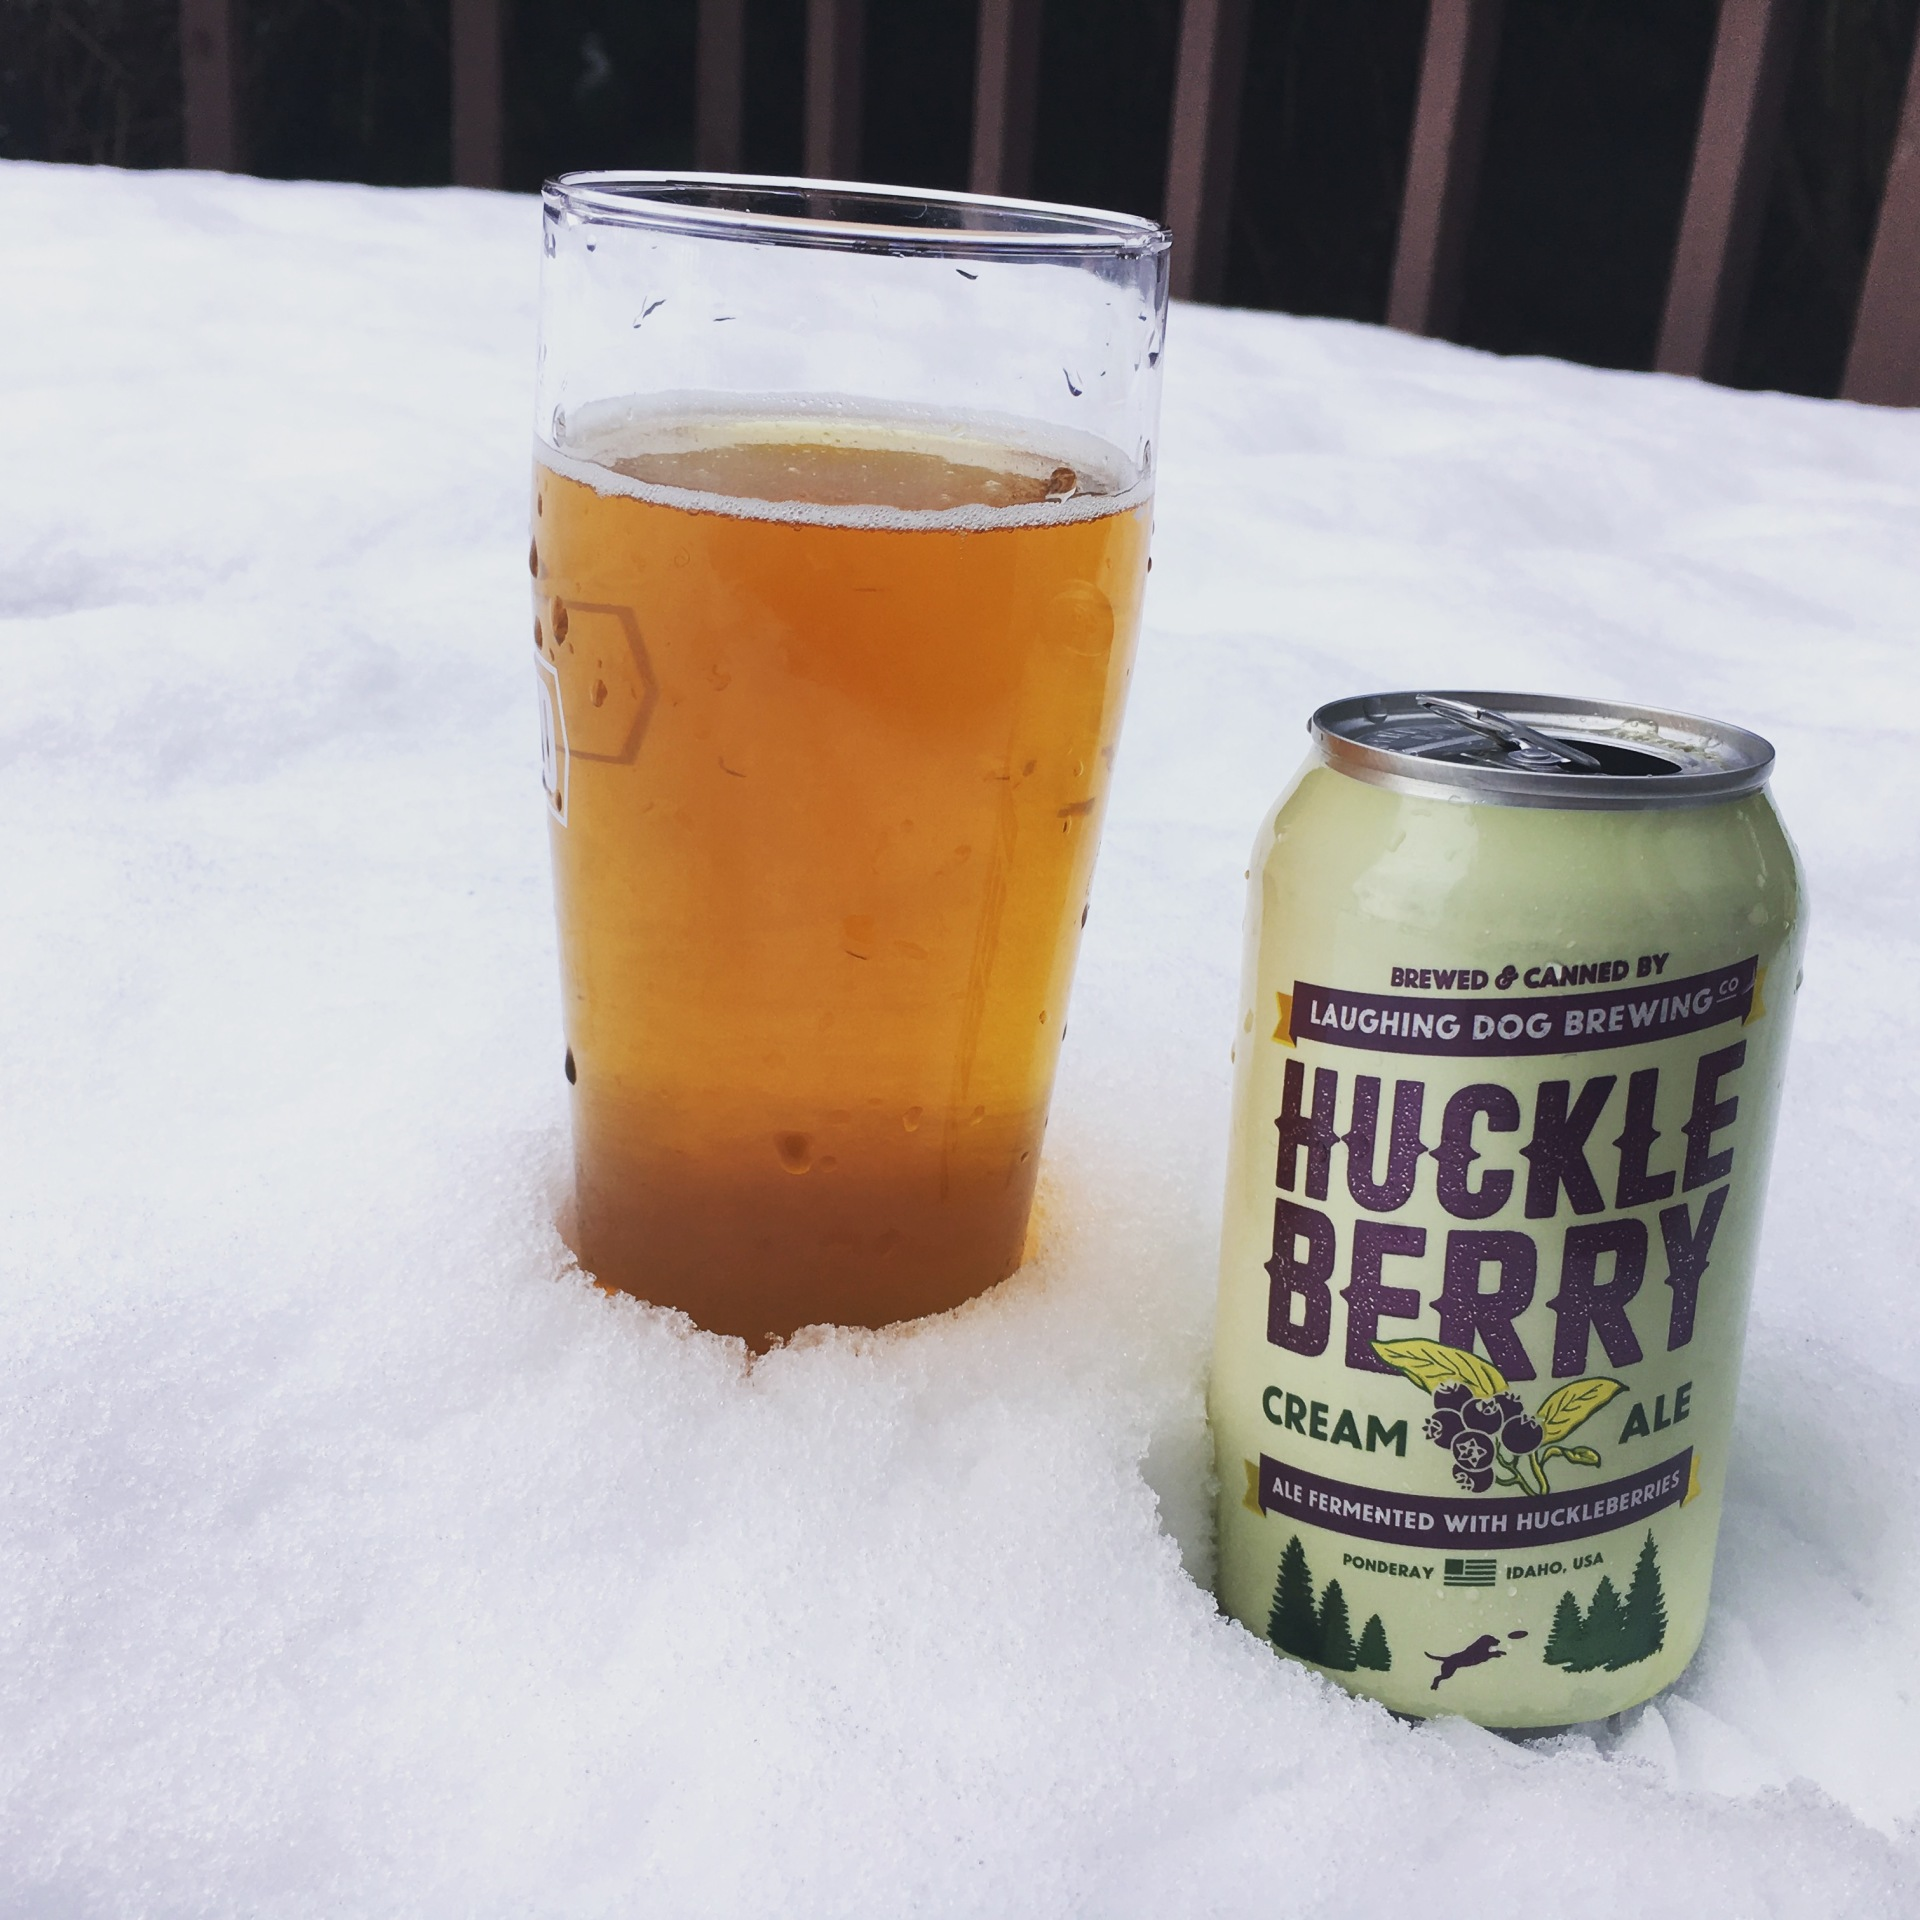 Huckleberry Cream Ale - Laughing Dog Brewing Co